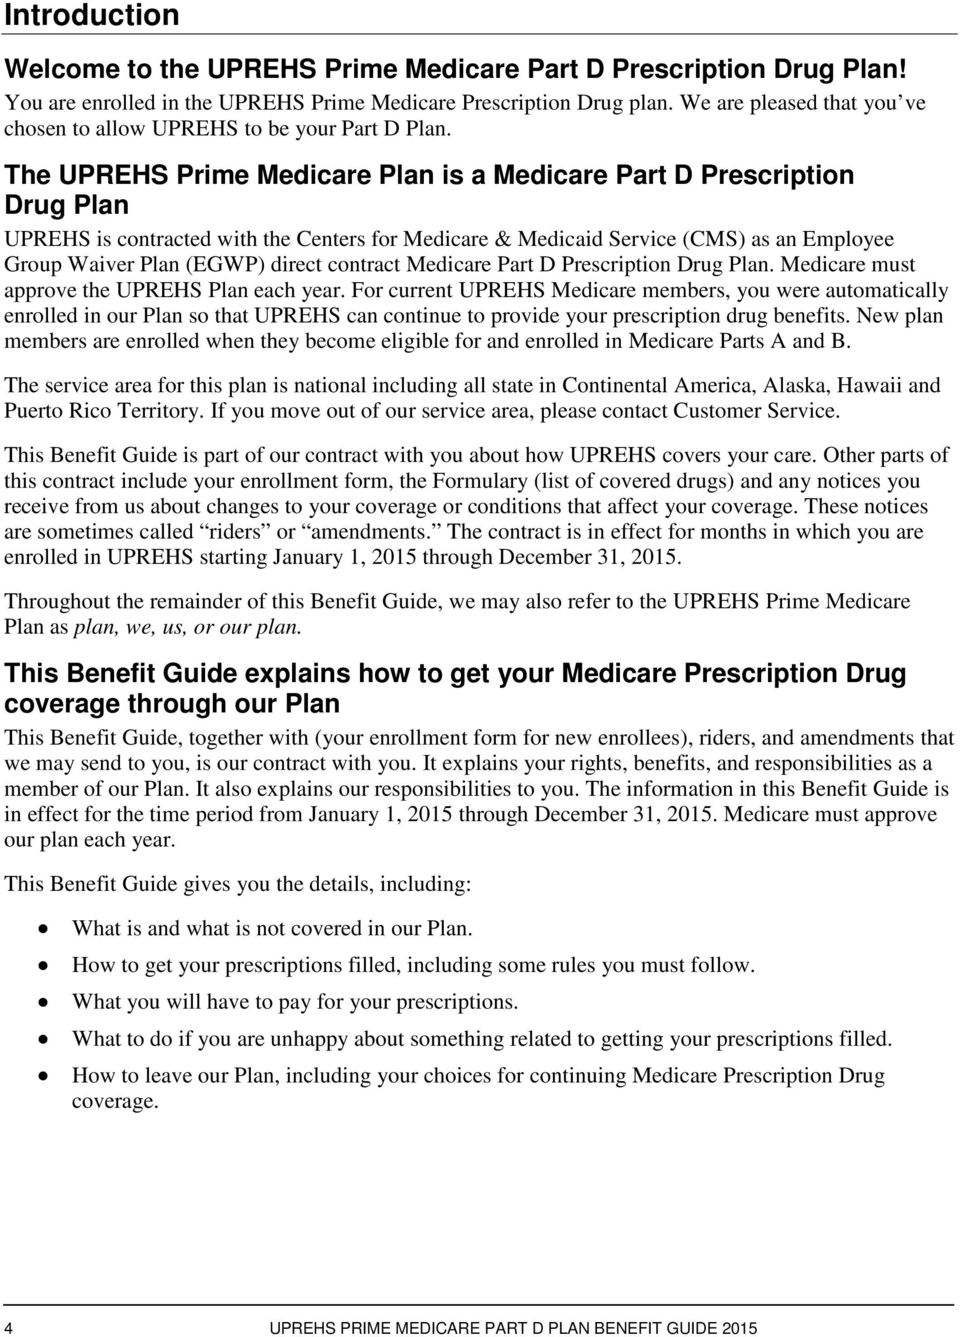 The Uprehs Prime Medicare Plan Is A Medicare Part D Prescription Drug Plan  Uprehs Is Contracted